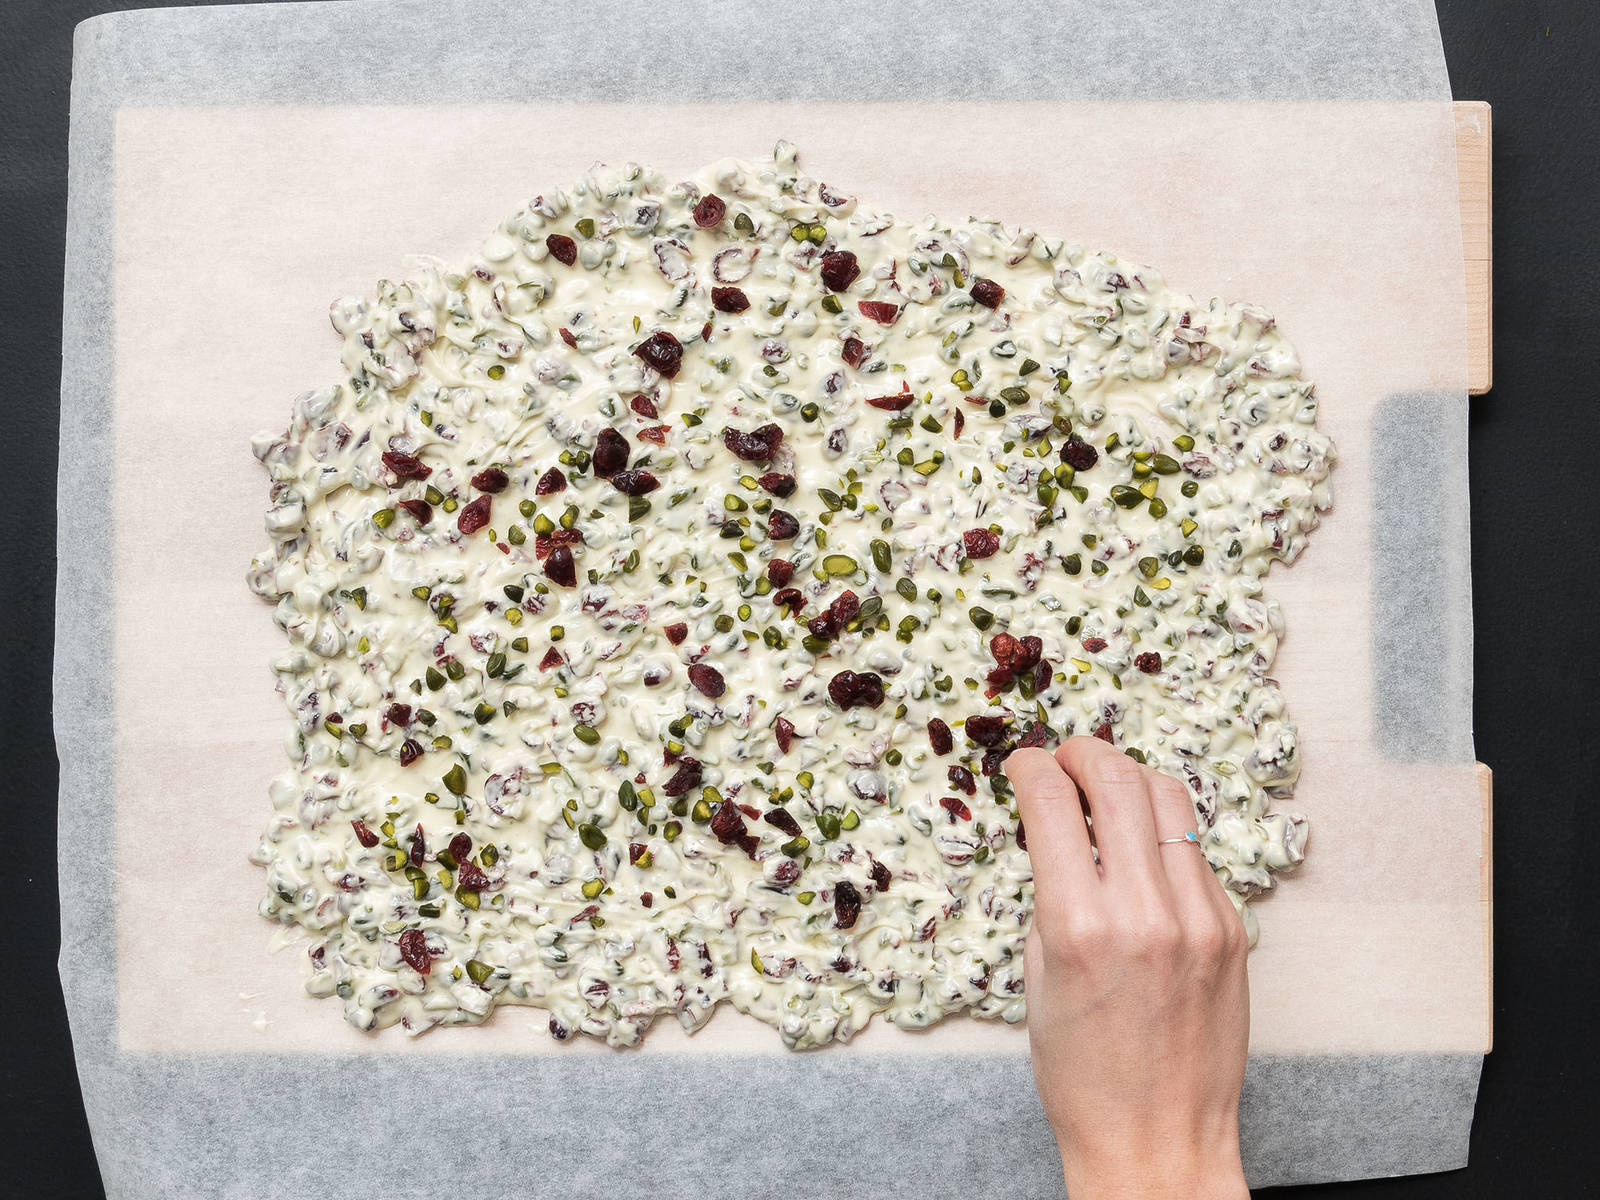 Spread the chocolate mixture over parchment paper, approx. 0.5-cm/0.25-in. thick, and sprinkle remaining pistachios and cranberries on top.